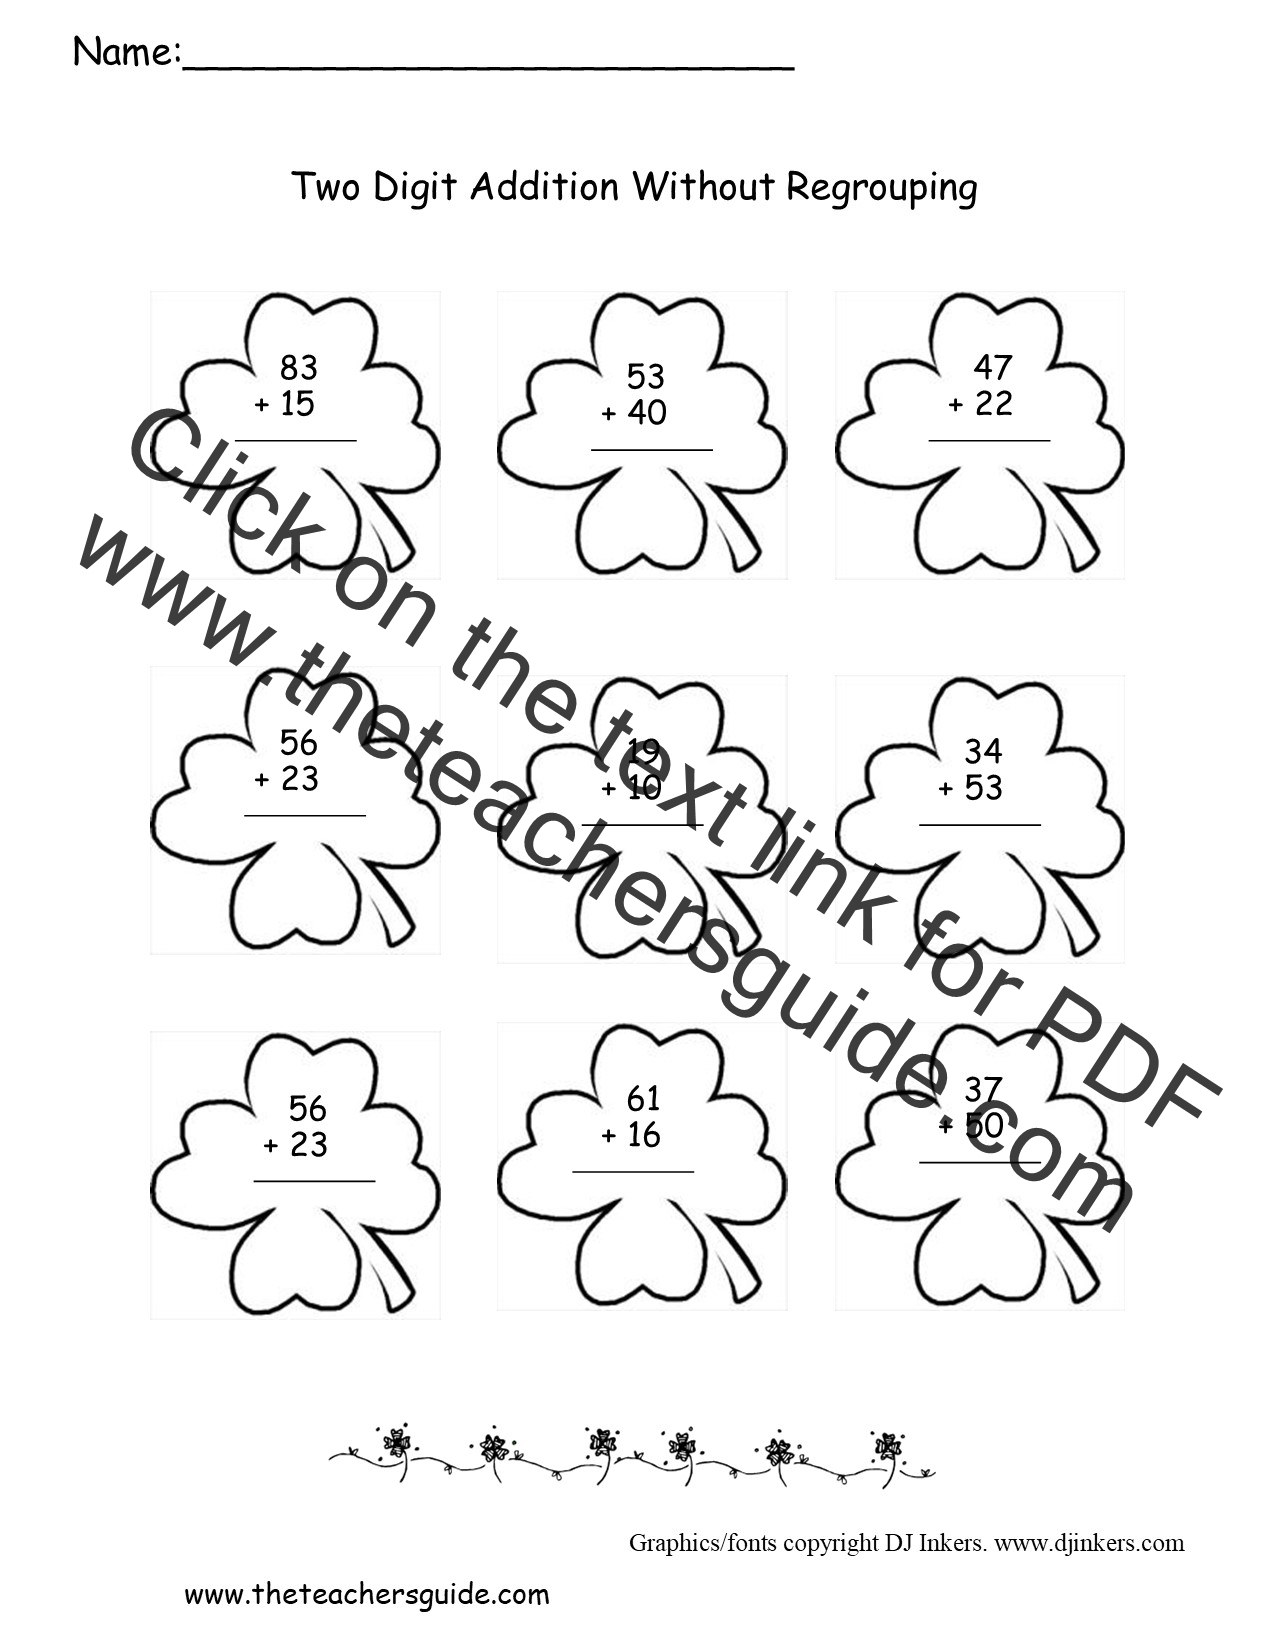 St Patricks Day Printouts from The Teachers Guide – Two Digit Subtraction Without Regrouping Worksheets